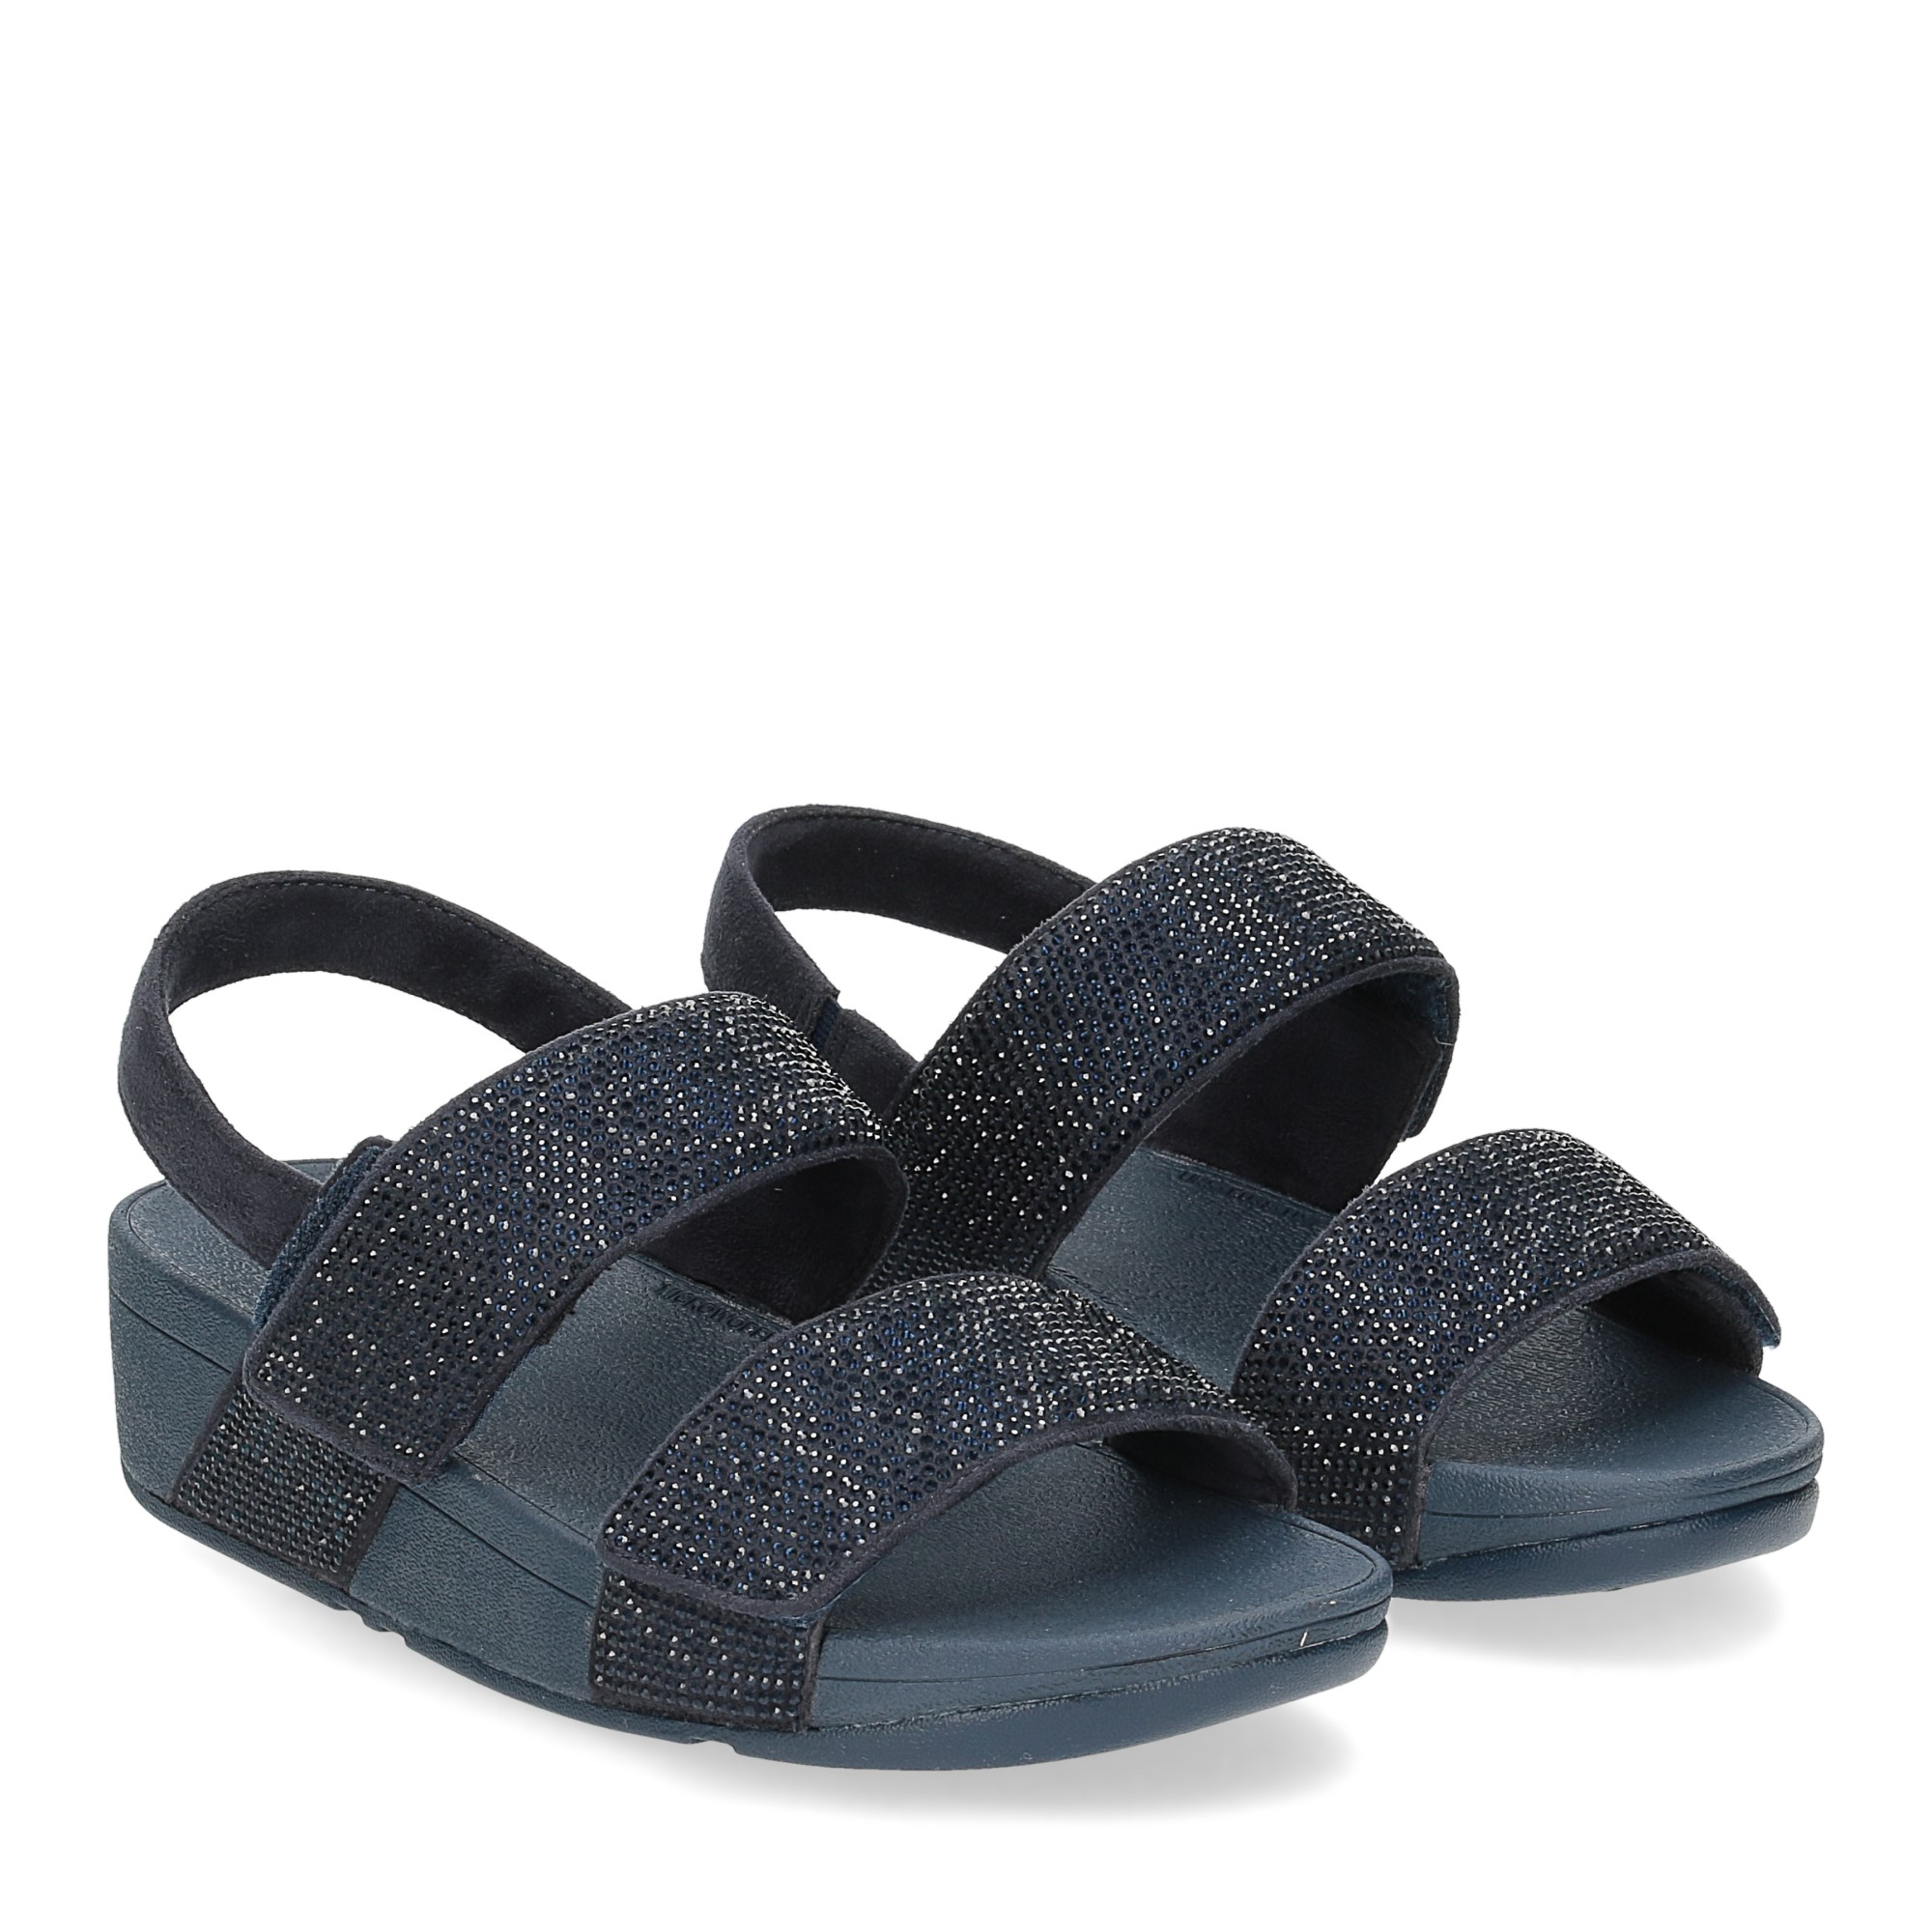 Fitflop Mina Crystal back strap sandals midnight navy